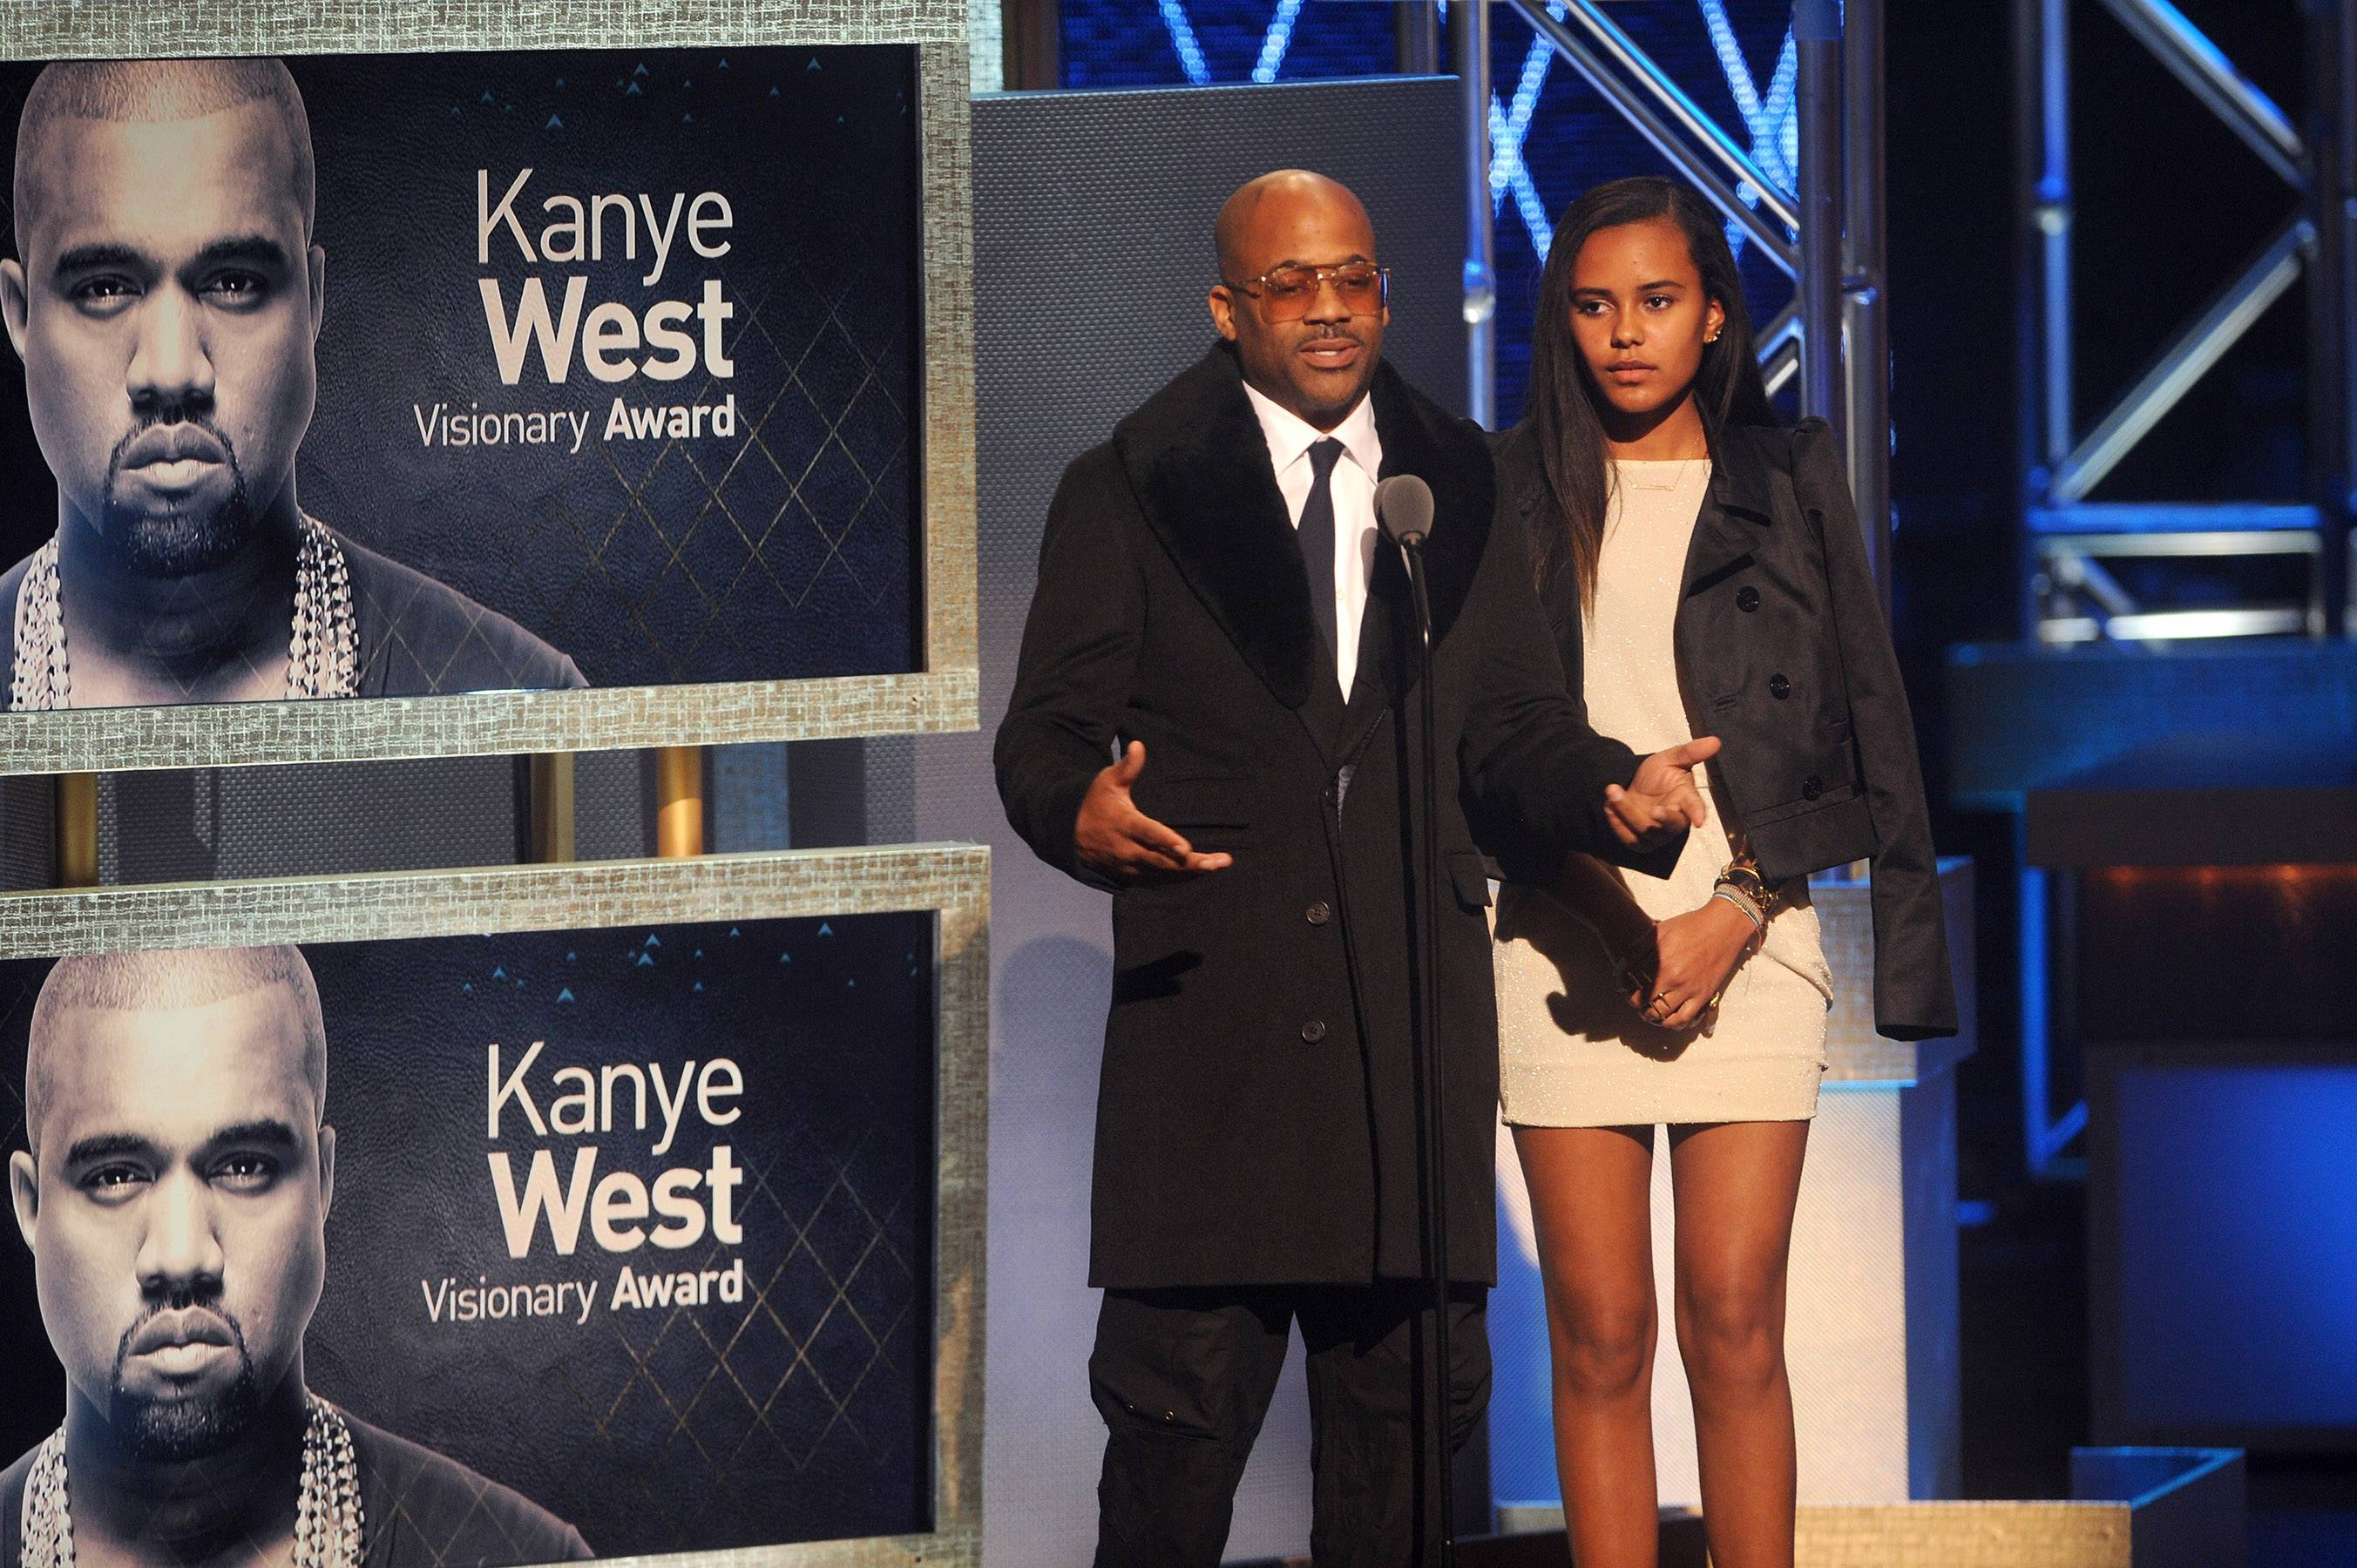 The Man, The Legend, The Visionary  - Damon Dash, one of the founders of Roc-A-Fella, spoke on his experiences with the one and only Kanye West. (Photo: Brad Barket/BET/Getty Images for BET)